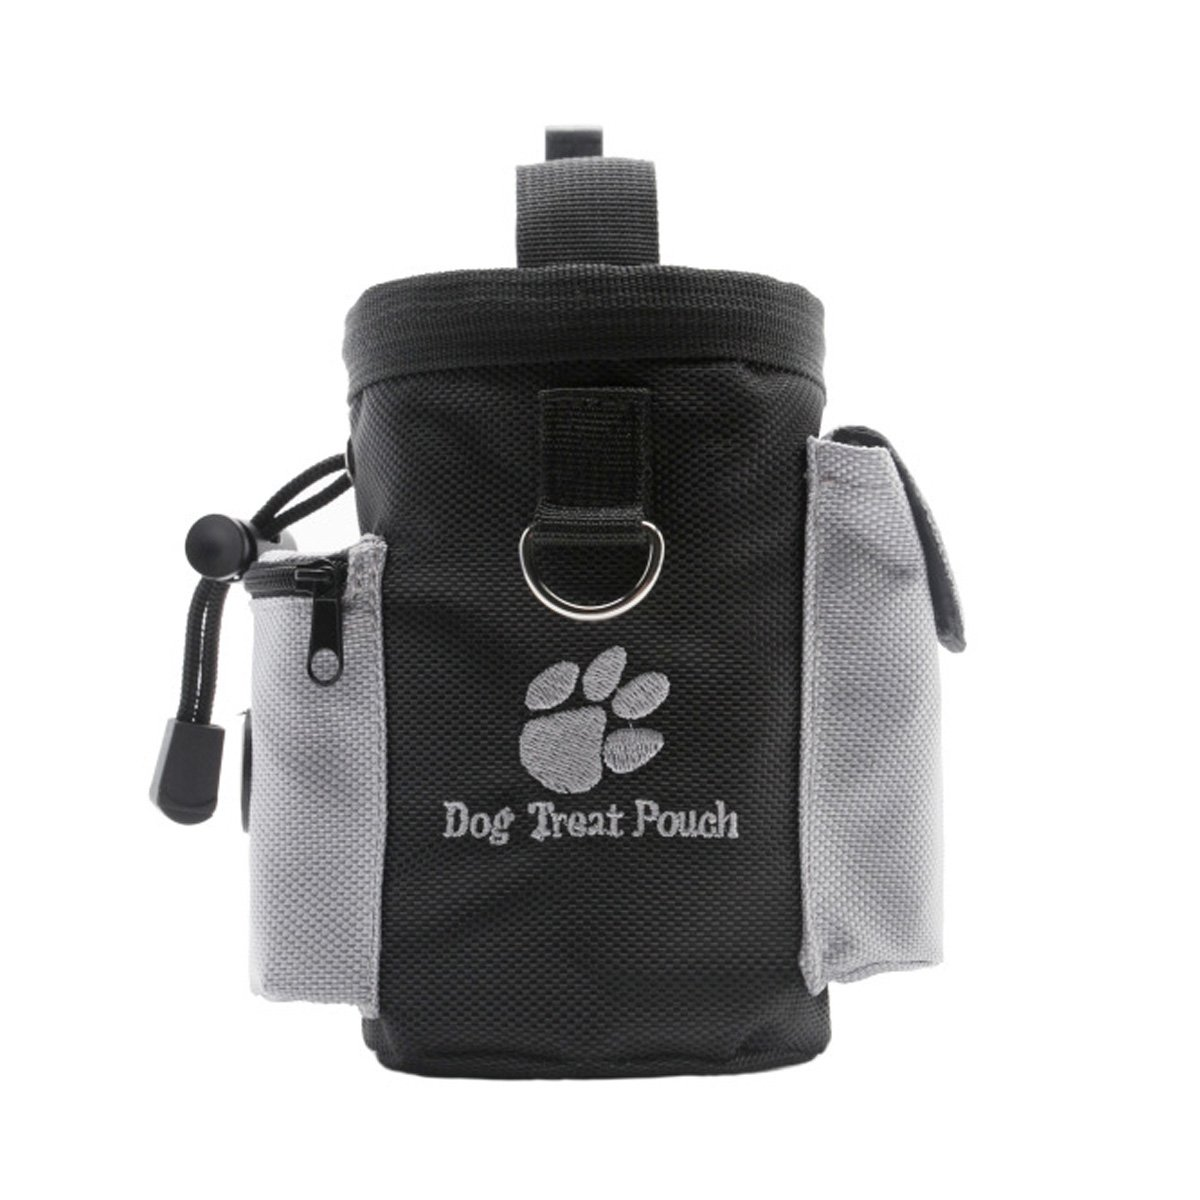 Lifeunion Dog Treat Snack Reward Training Pouch Bag Container, Carries Food and Toys,Puppy Poop Bag Dispenser,Waist Clip and Drawstring